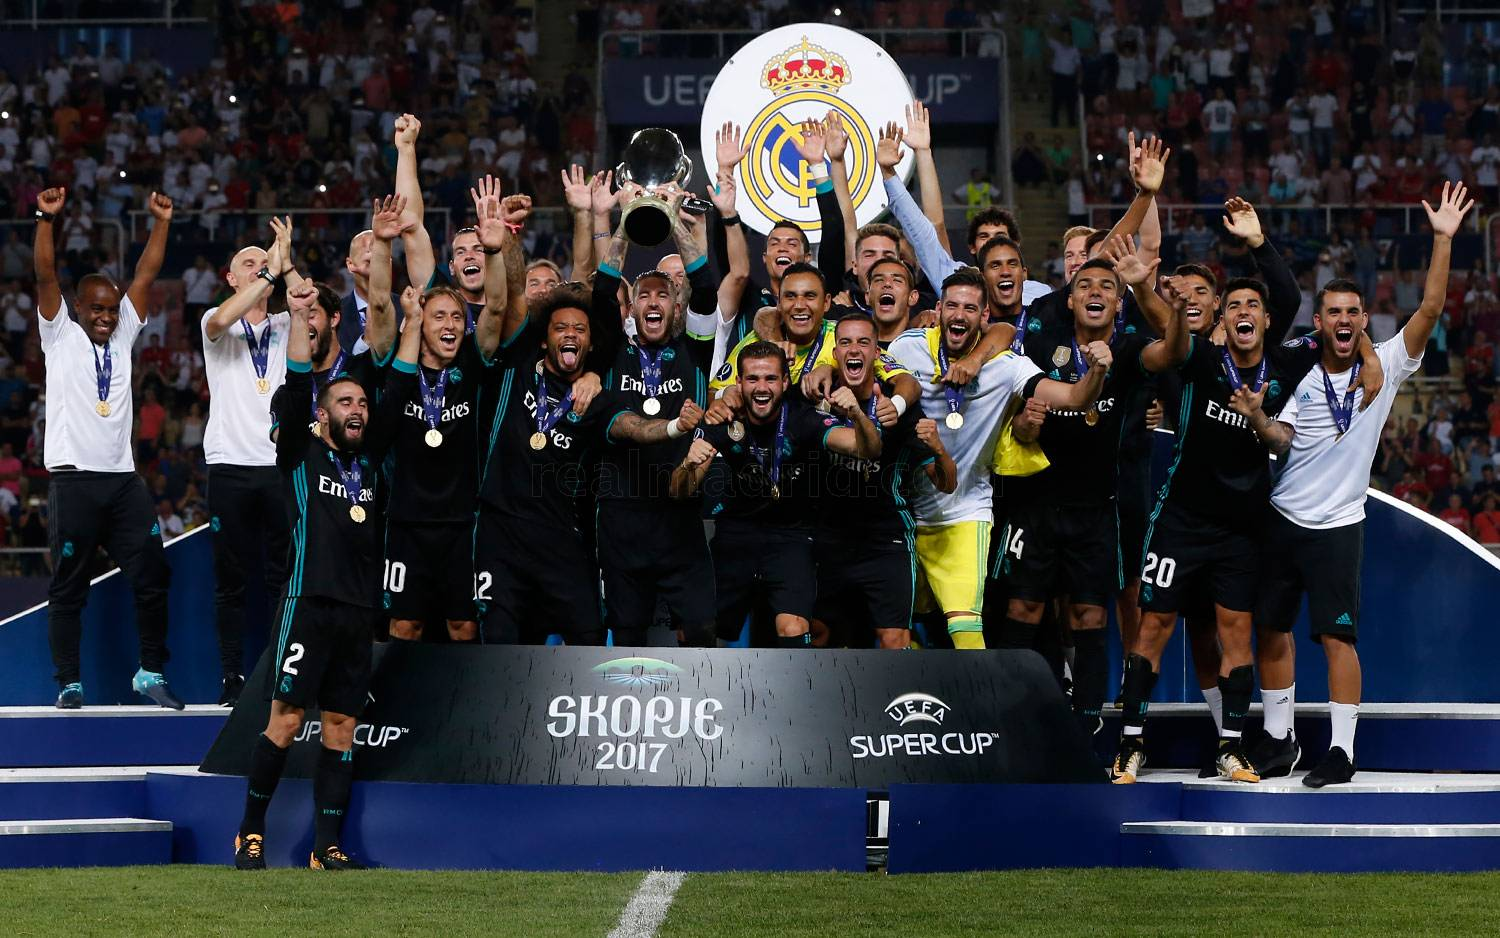 Real Madrid - Con la Supercopa de Europa en Macedonia - 10-09-2018